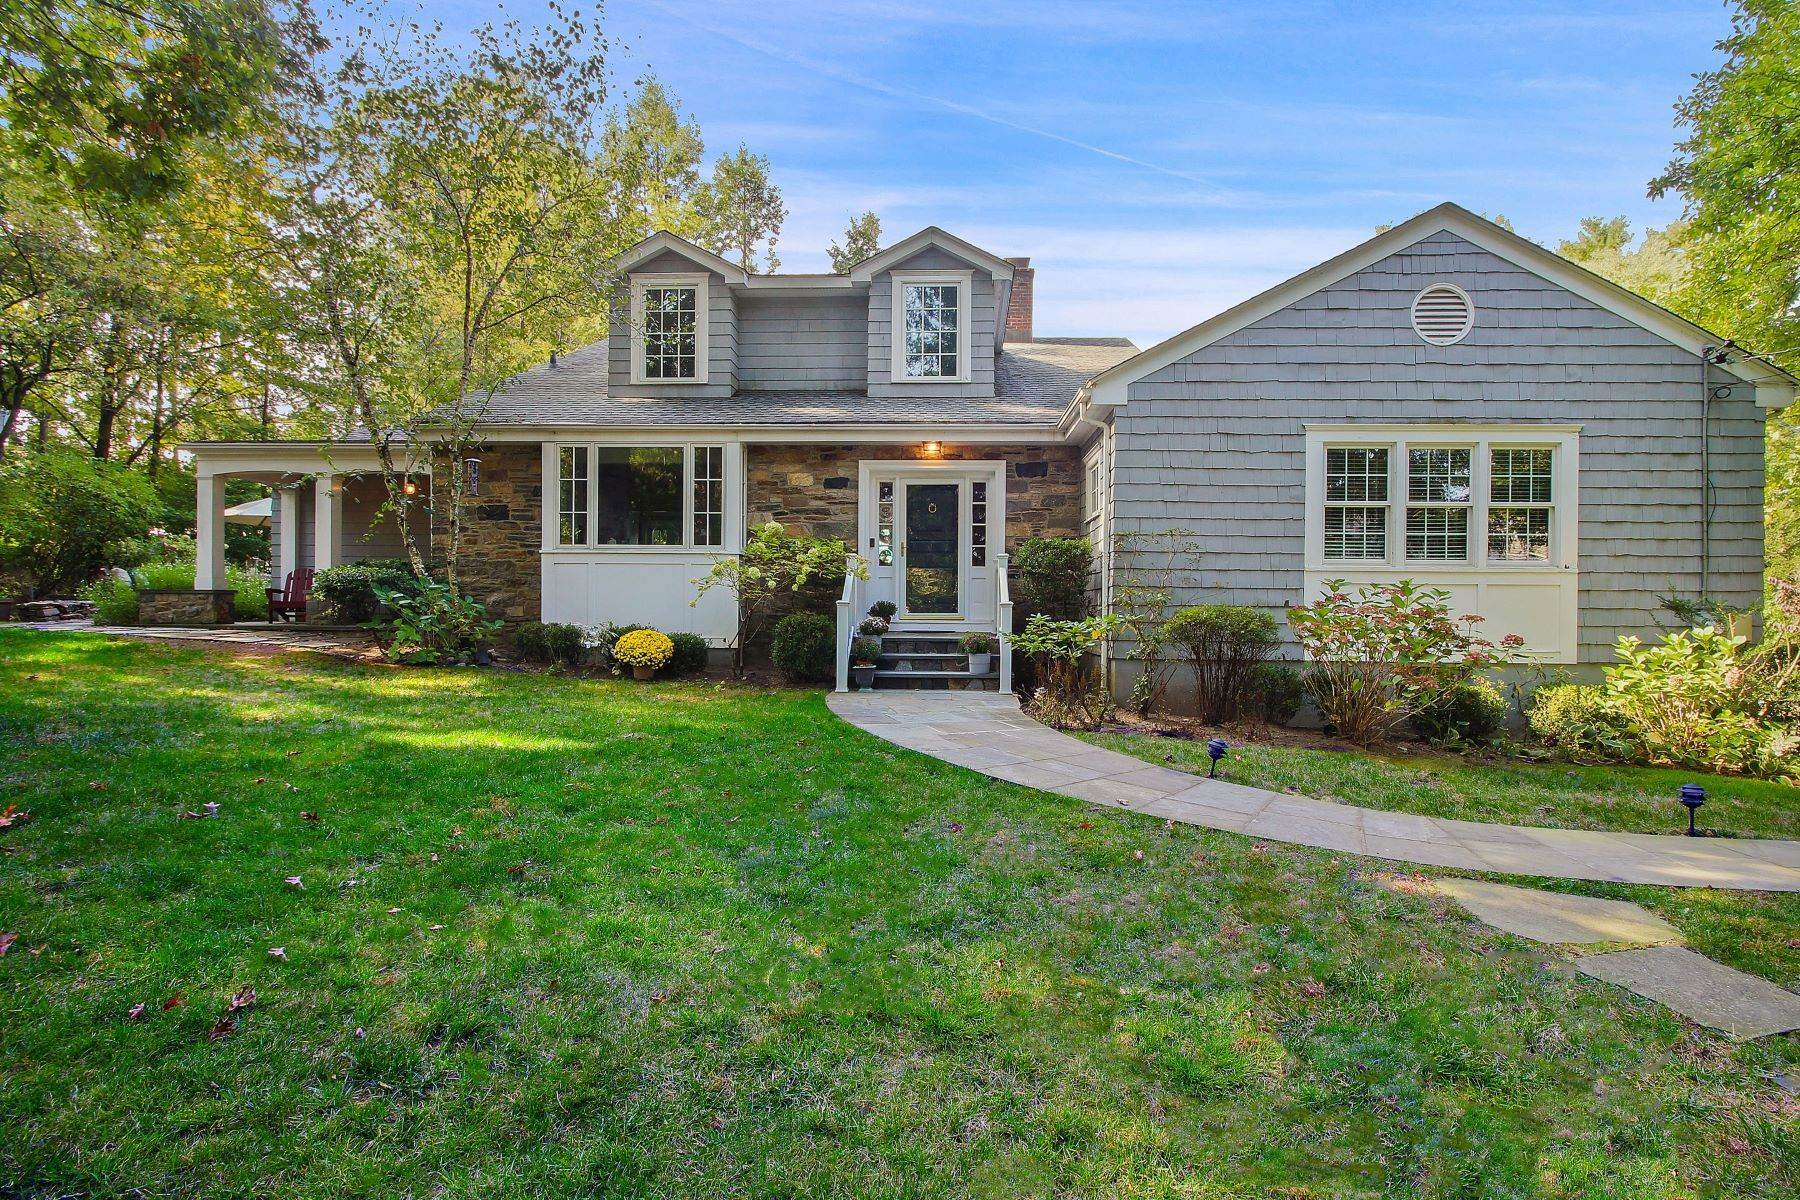 Single Family Homes for Sale at Hidden Gem in Scarsdale Estate Area 67 Griffen Avenue Scarsdale, New York 10583 United States